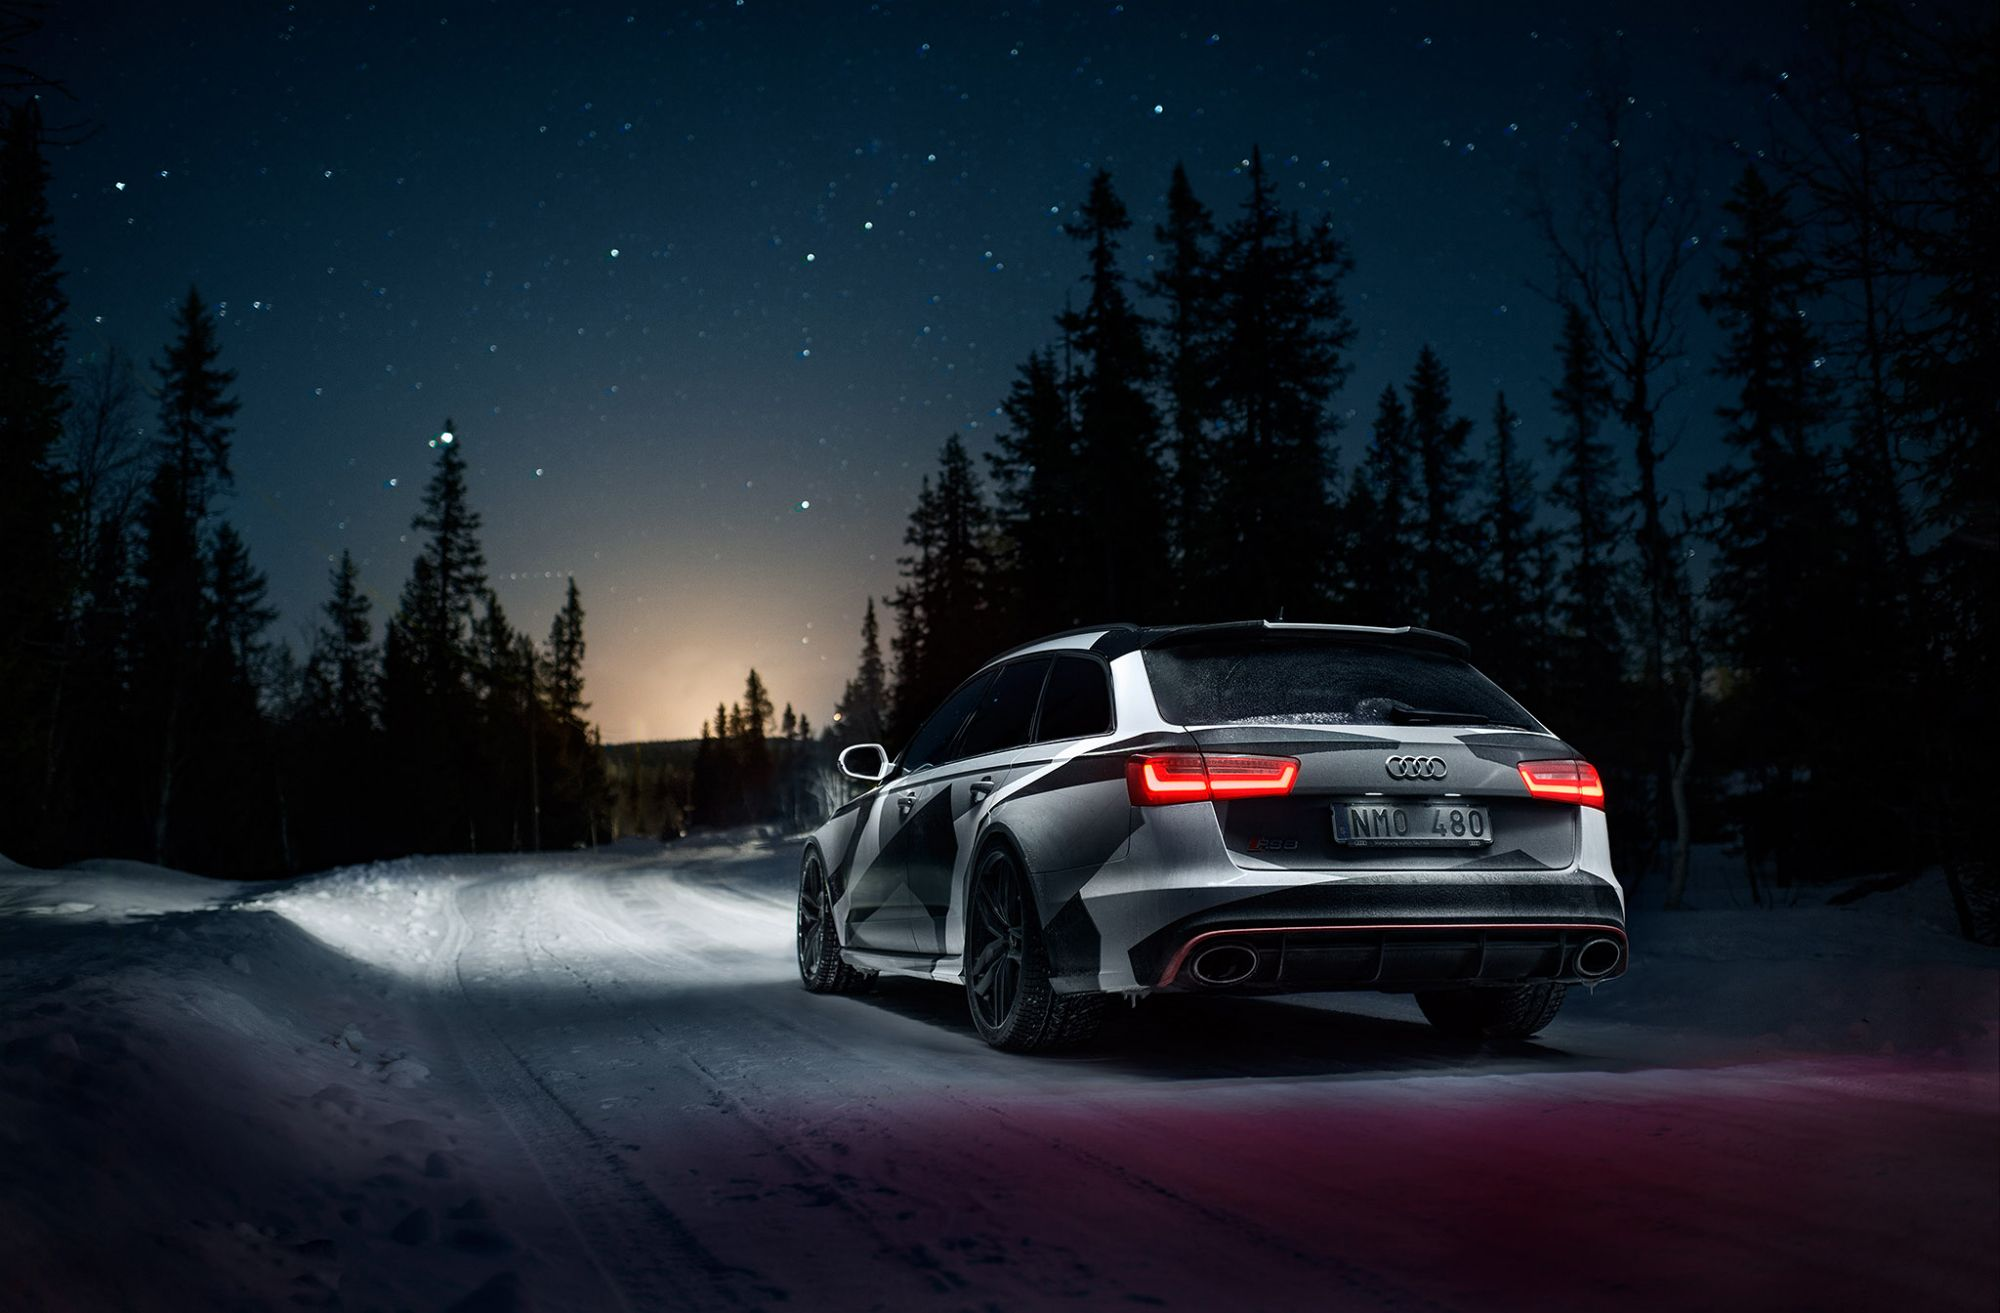 Collection Of Audi Wallpapers On Hdwallpapers 1920 1200 Audi